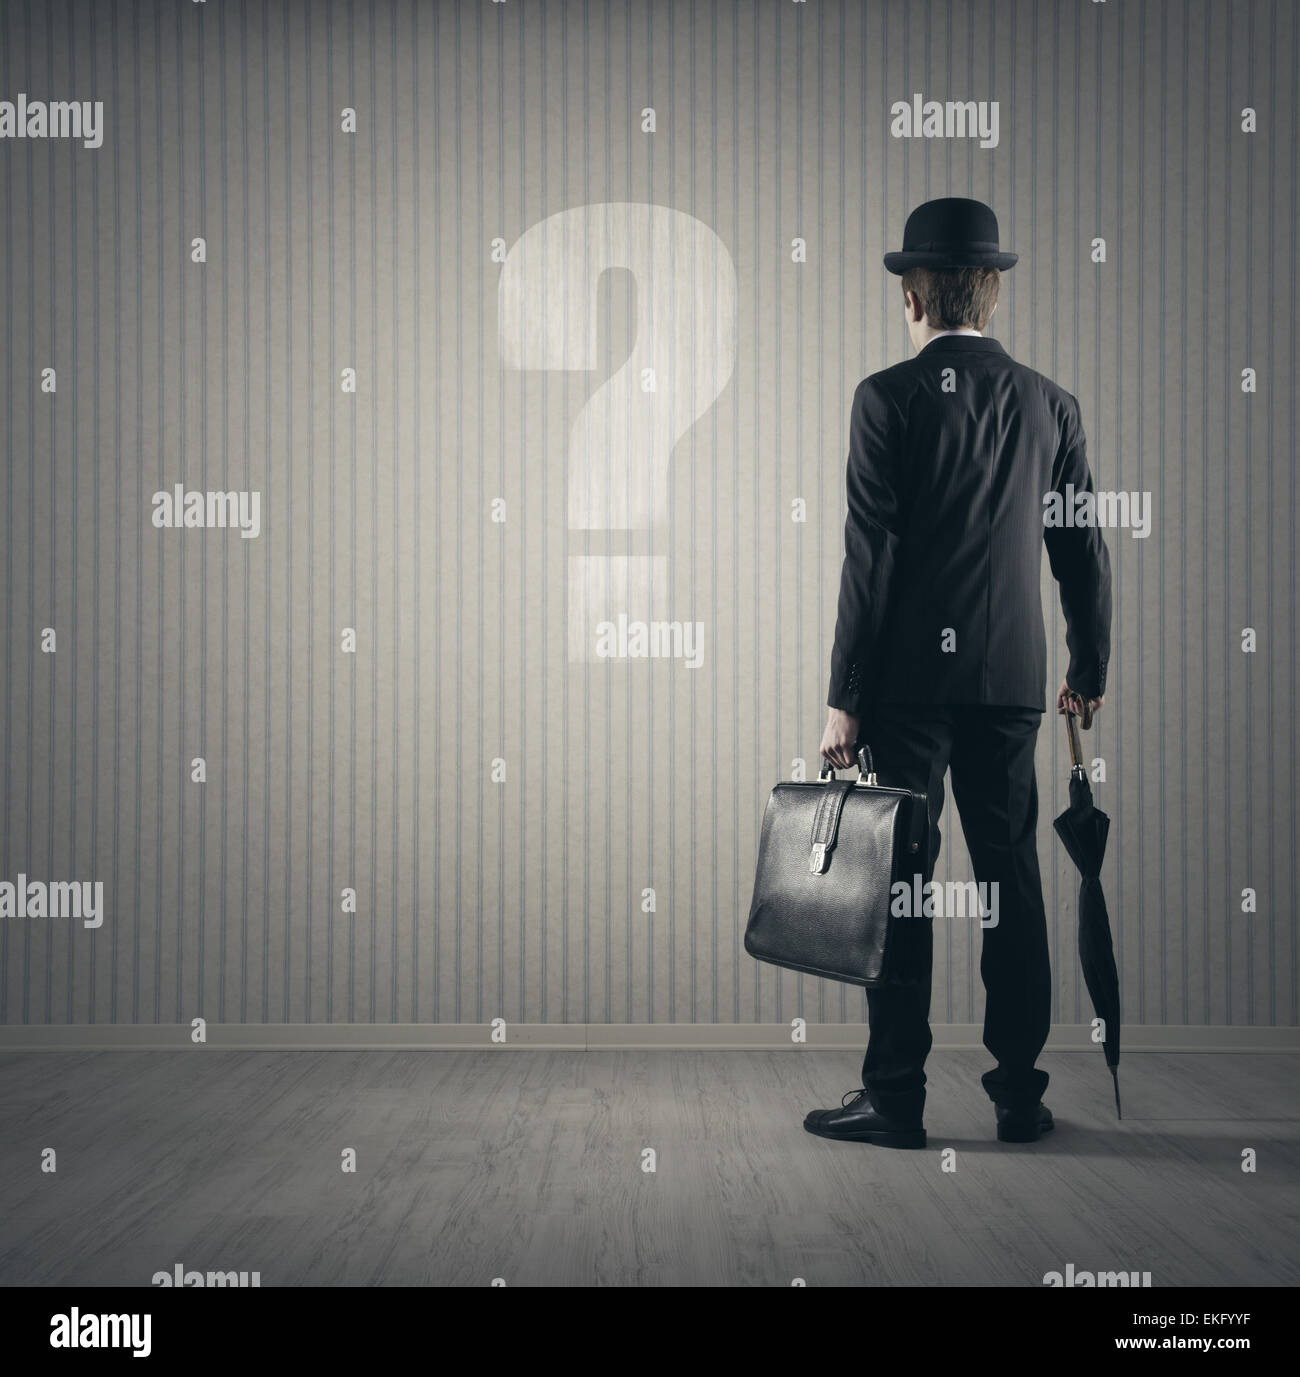 Businessman and questions - Stock Image